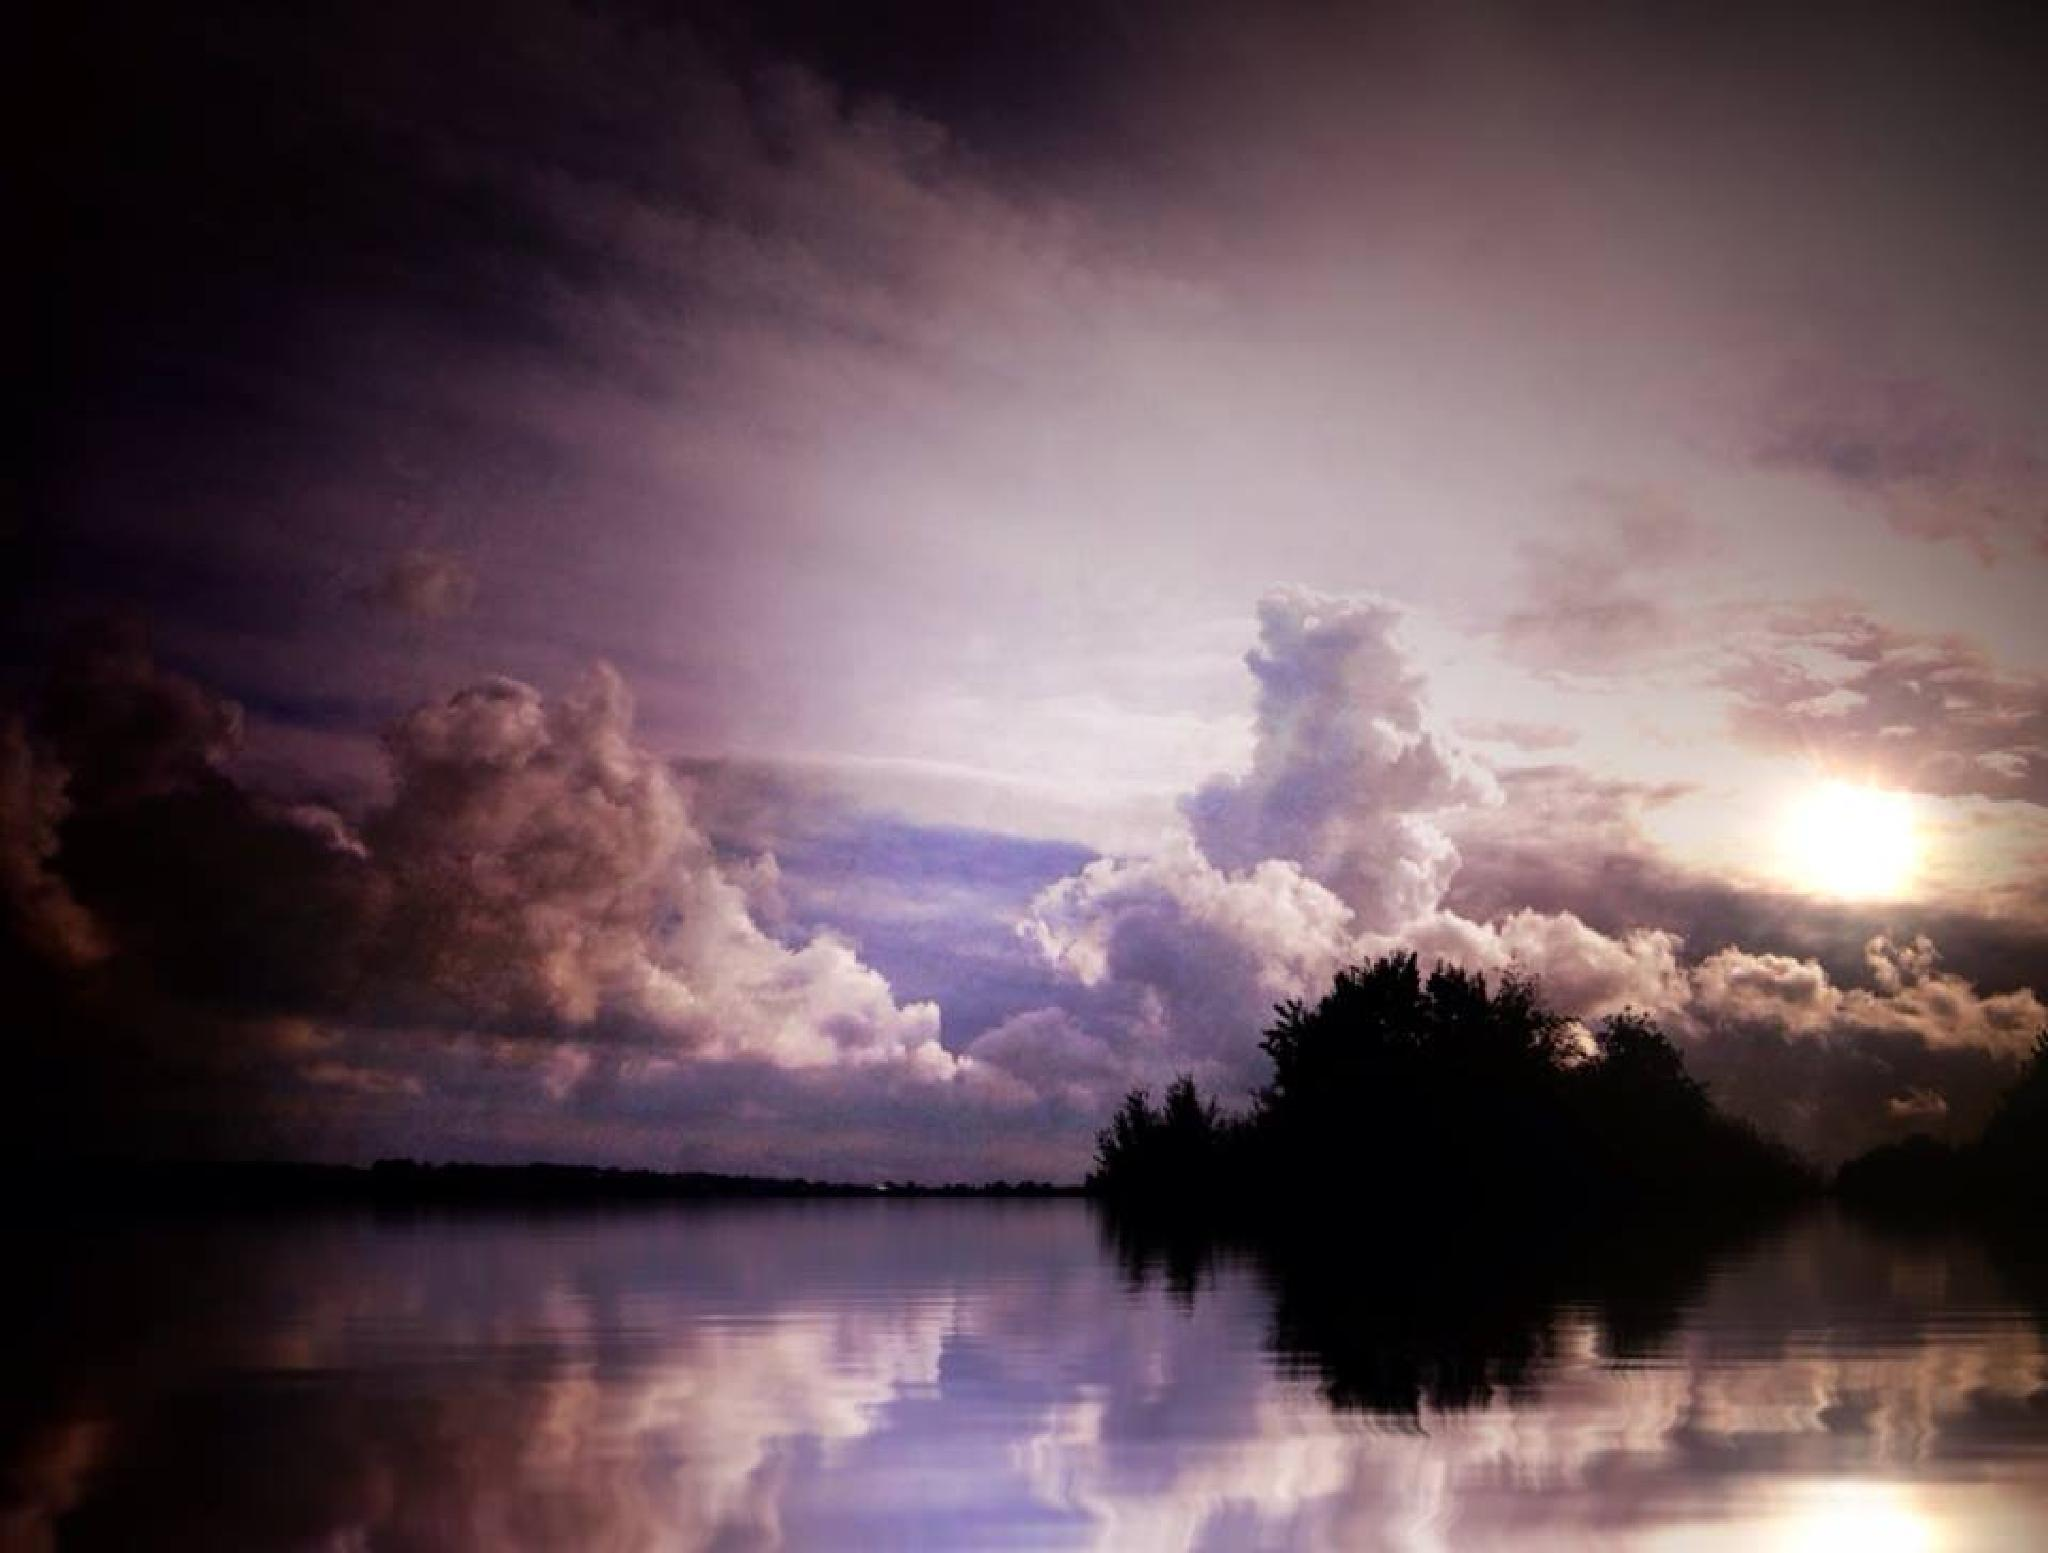 reflective by lesley.rudram